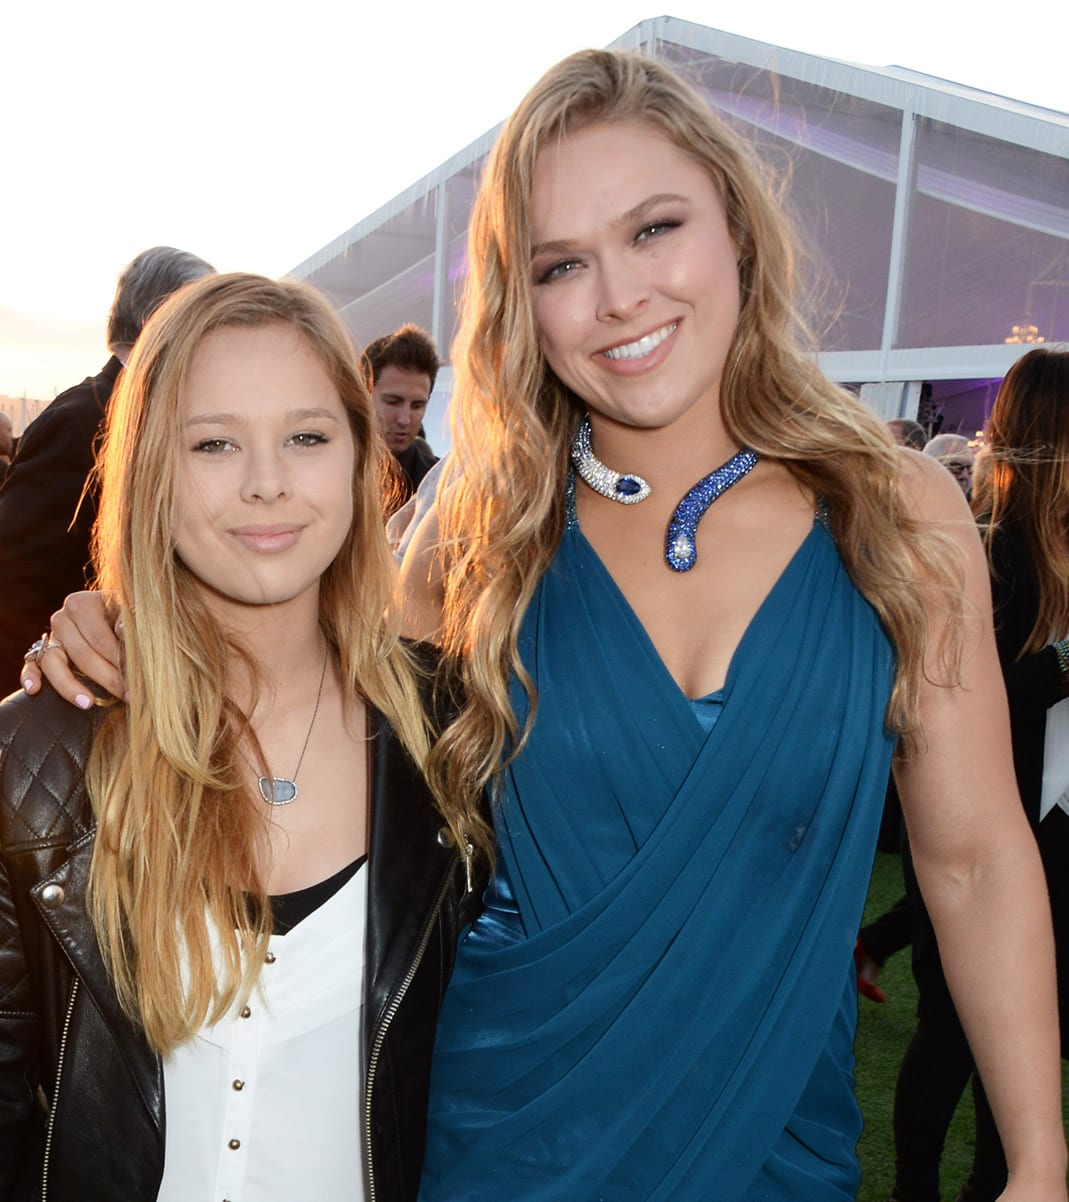 """CANNES, FRANCE - MAY 18: Ronda Rousey (R) and sister Julia Rousey attend """"The Expendables 3"""" private dinner and party at Gotha Night Club at Palm Beach on May 18, 2014 in Cannes, France. (Photo by David M. Benett/Getty Images for Millennium Films)"""